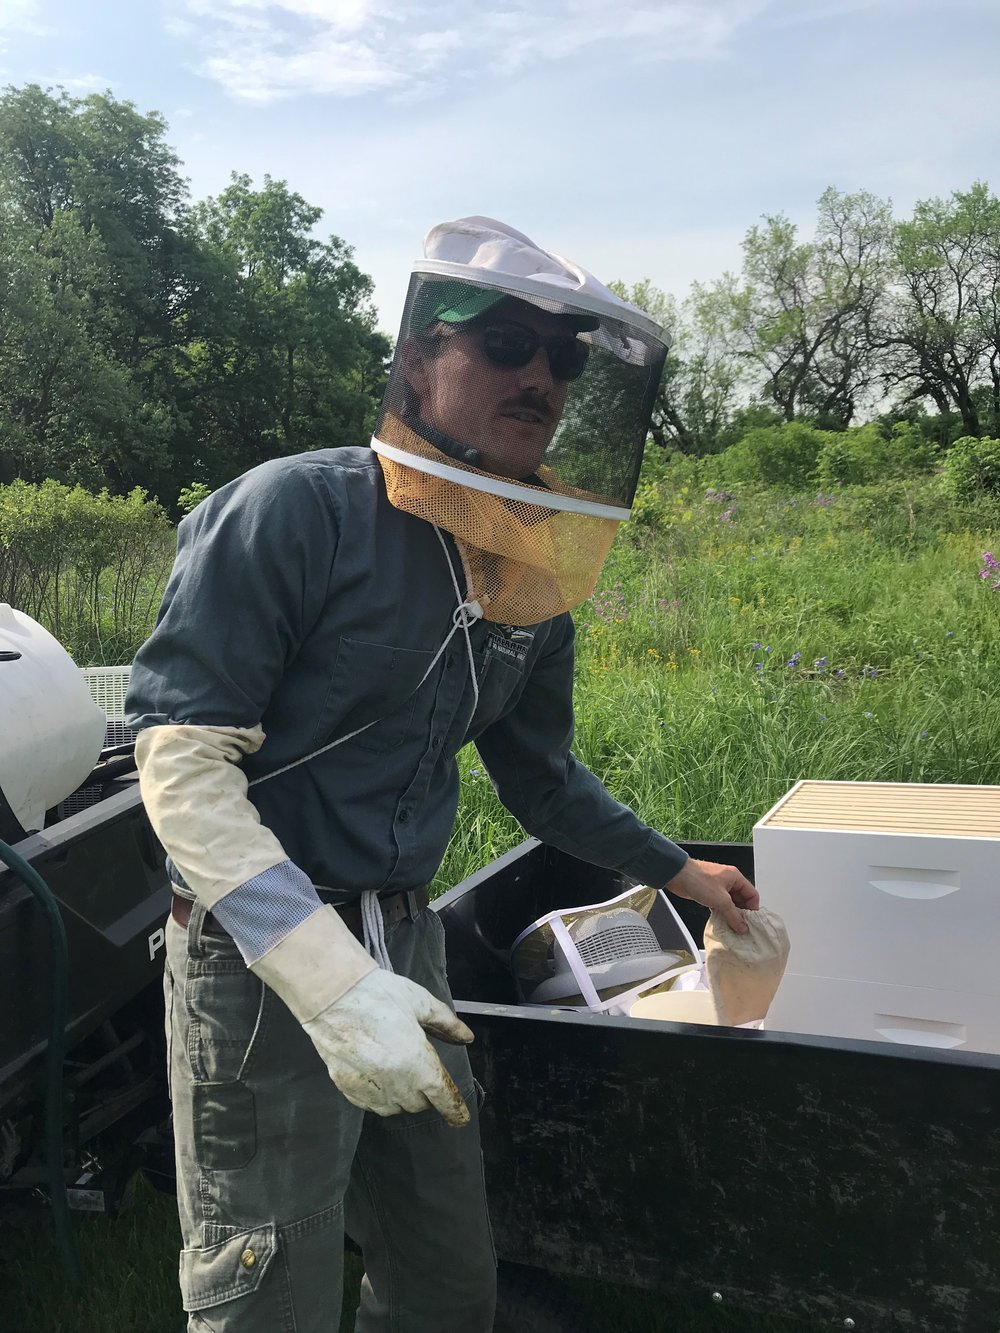 College of DuPage Prairie Manager Remic Ensweiler prepares to visit and maintain the four bee hives on the eastern edge of the COD campus